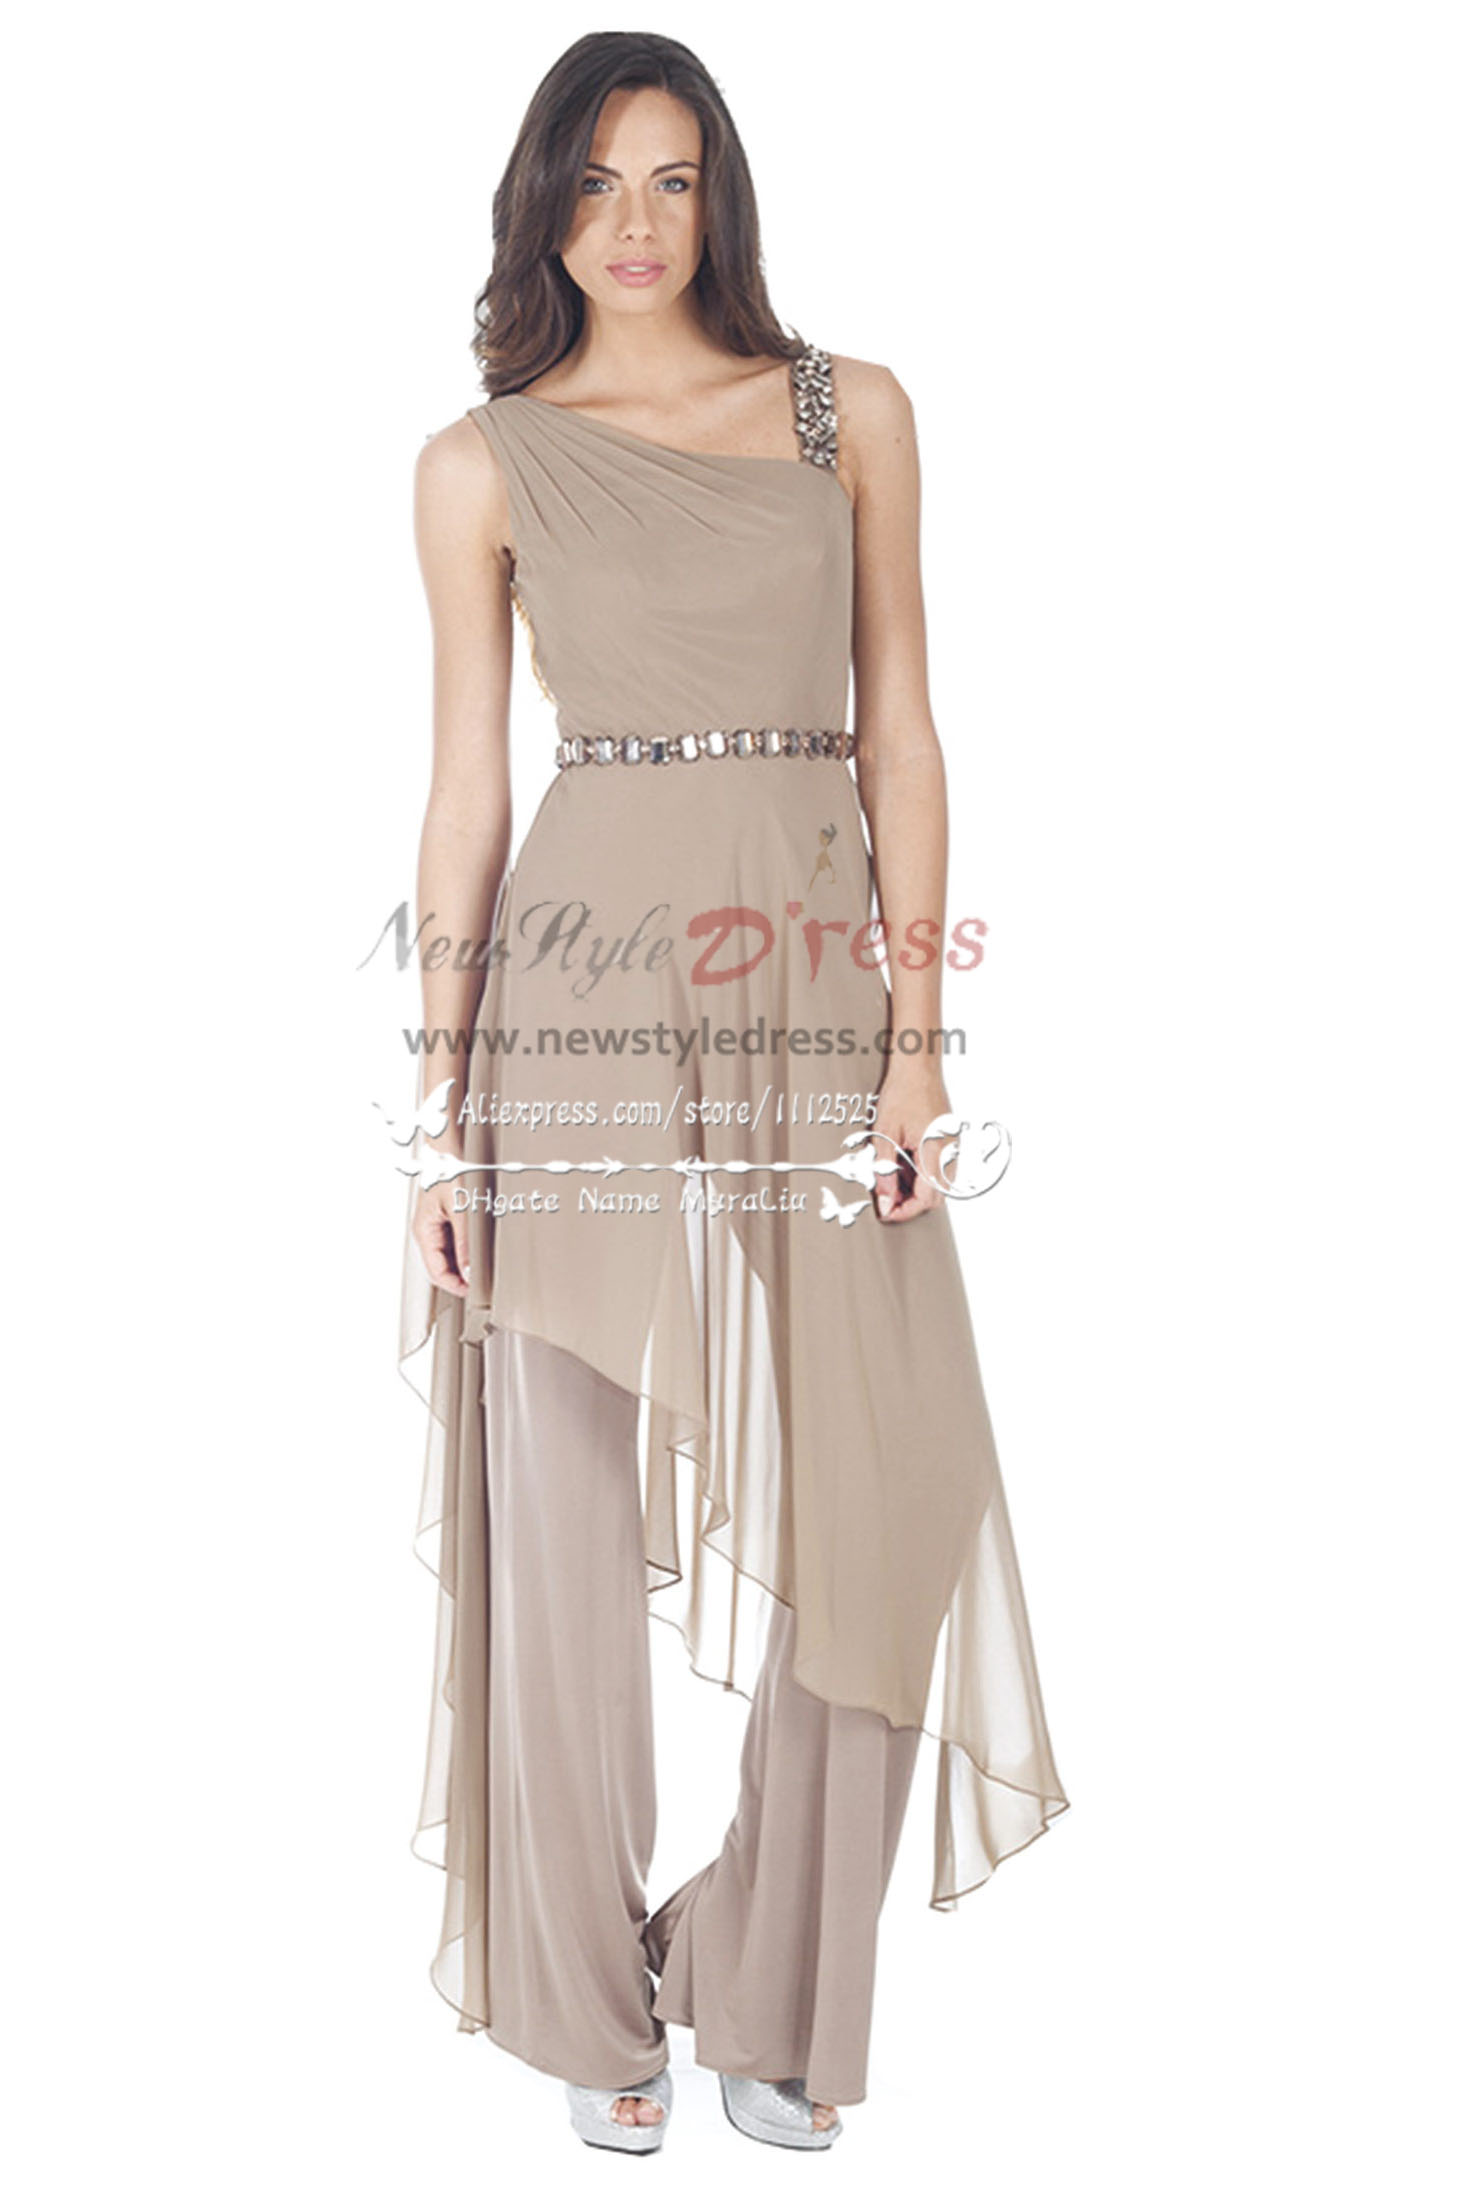 107cdc97244c Fashion Gray chiffon jumpsuit with crystal for wedding party women s dress  wps-063